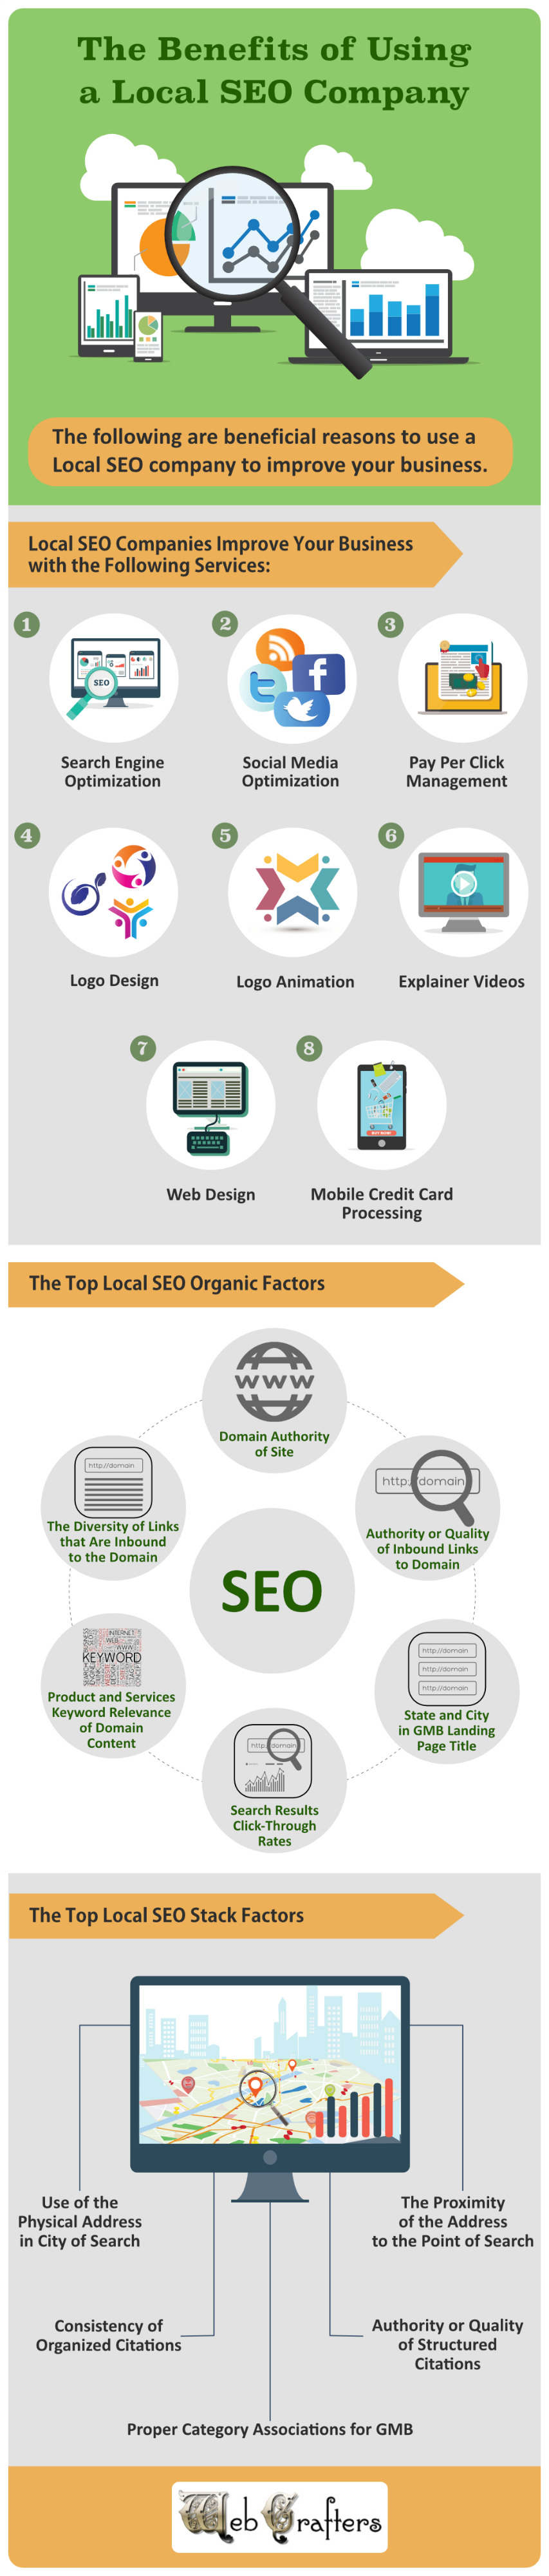 Benefits Of Using A Local SEO Company